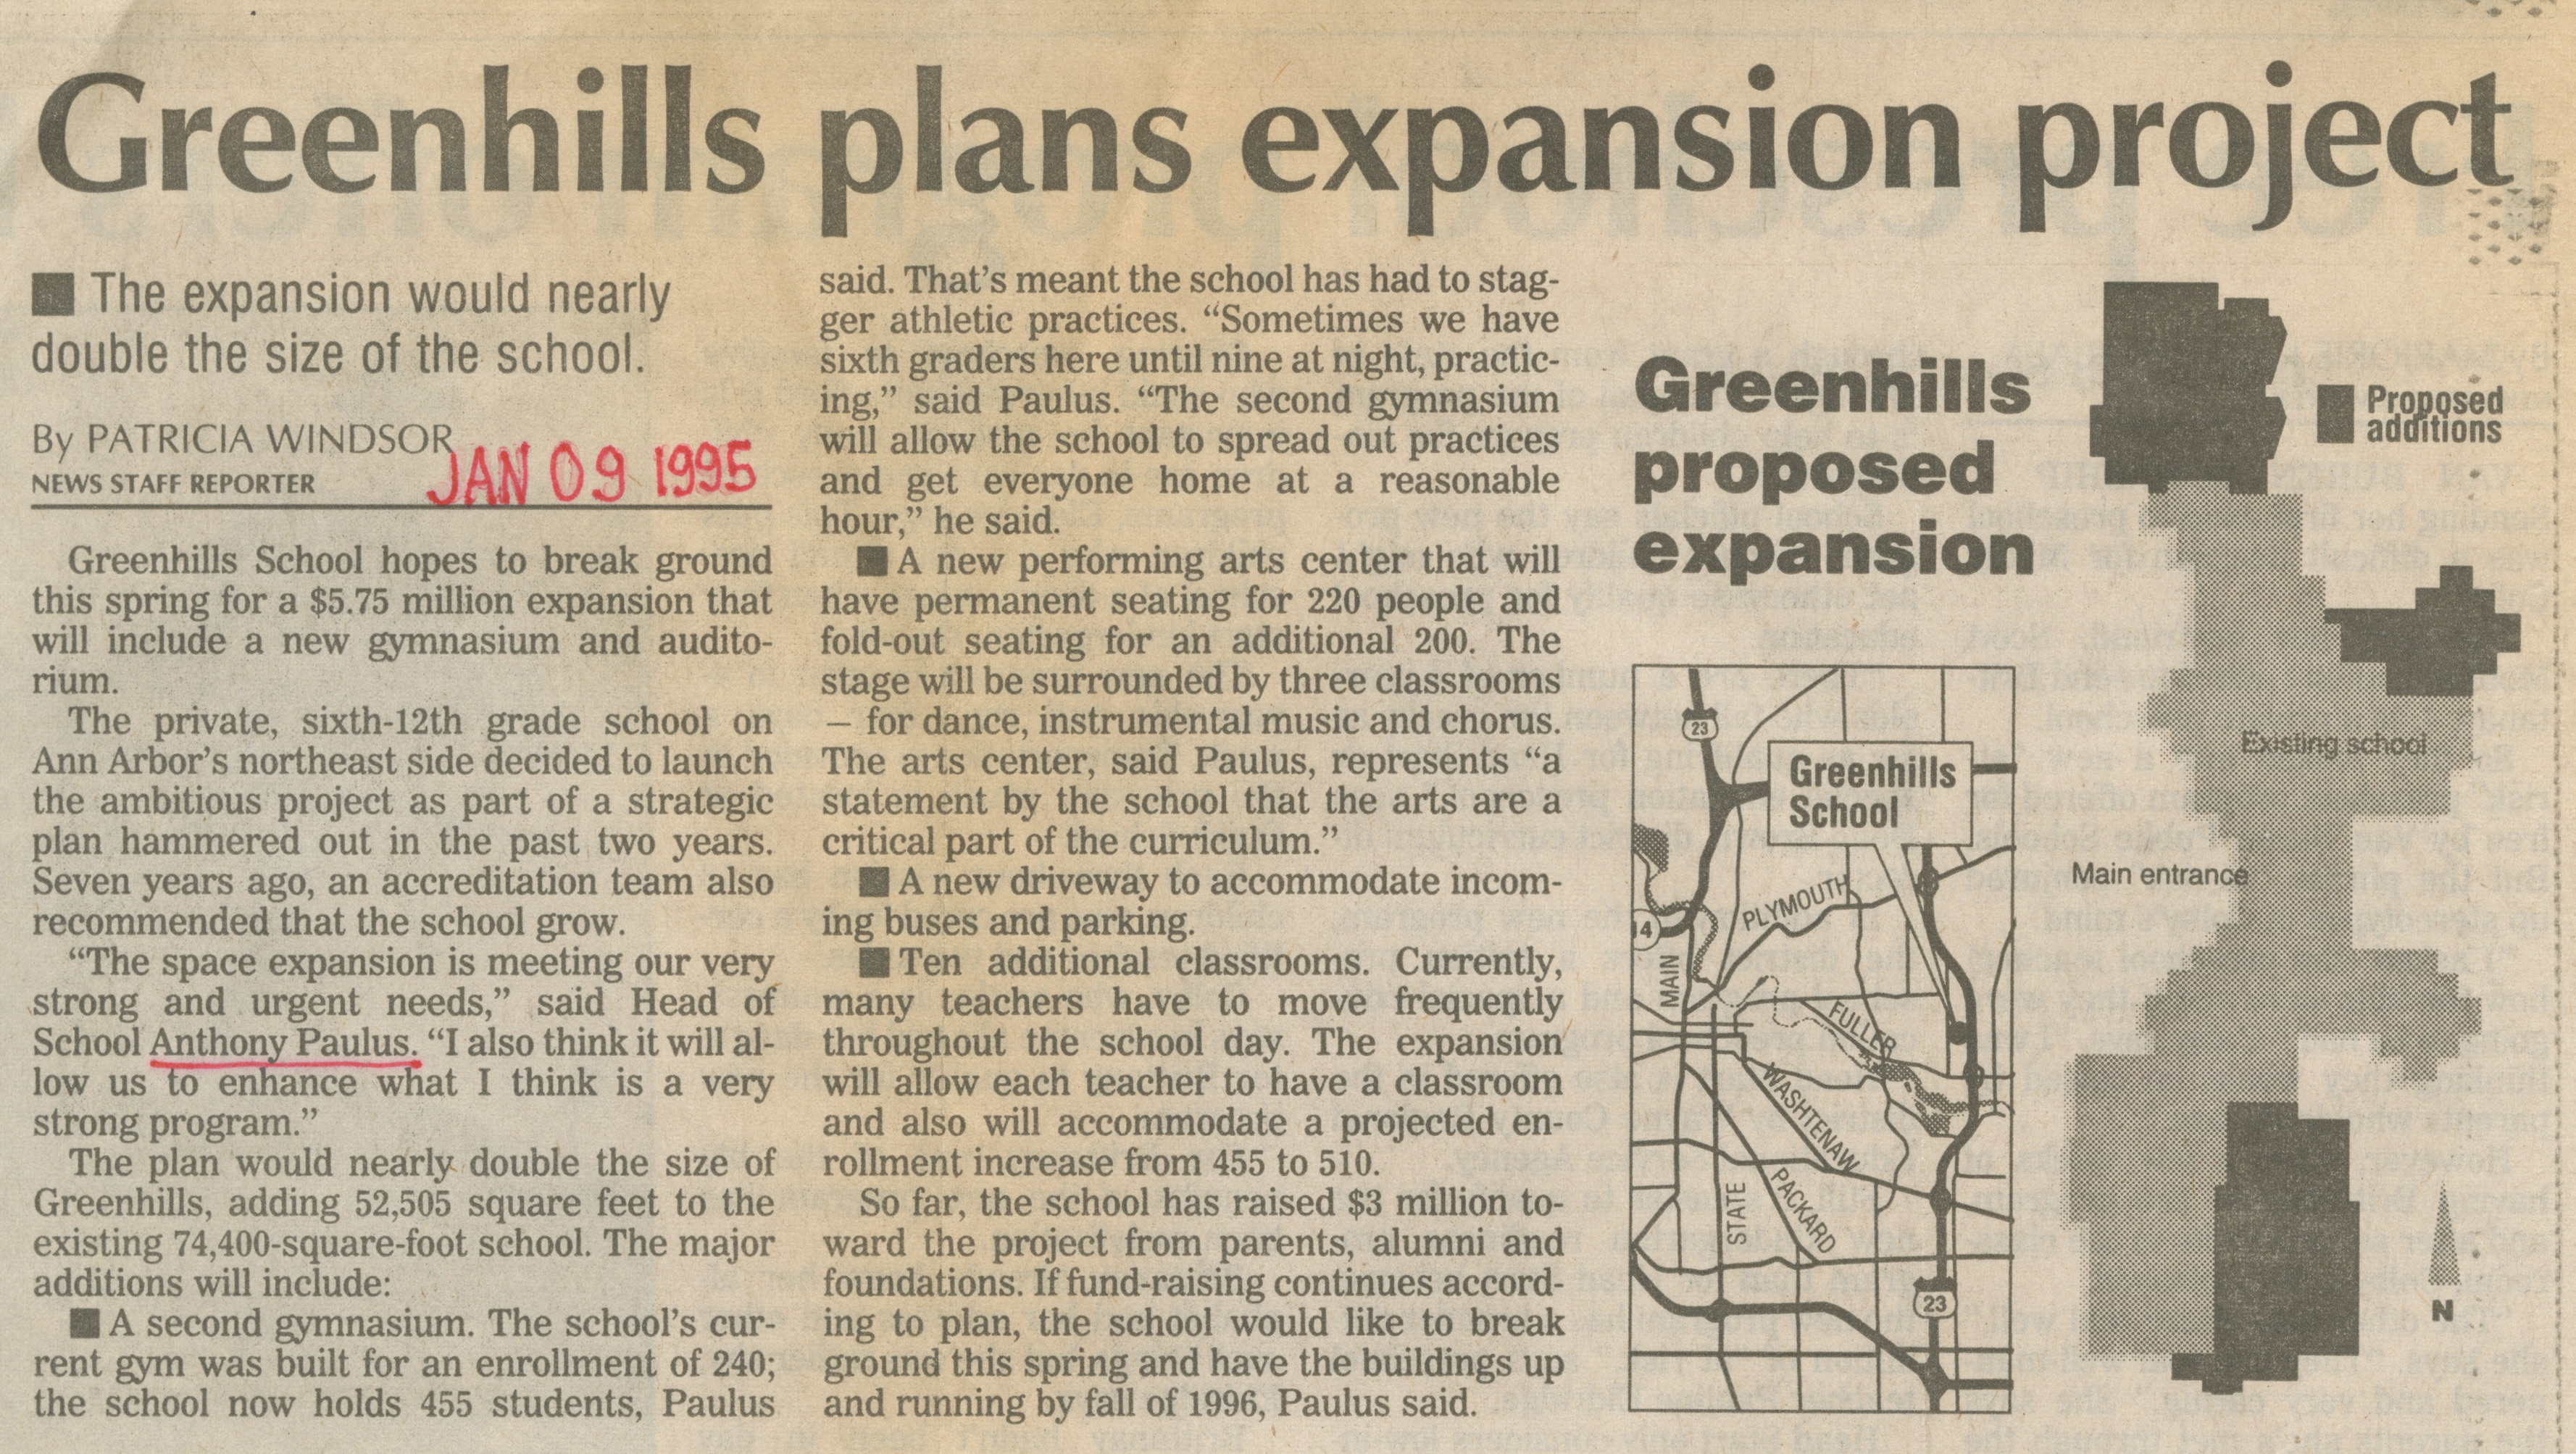 Greenhills Plans Expansion Project image